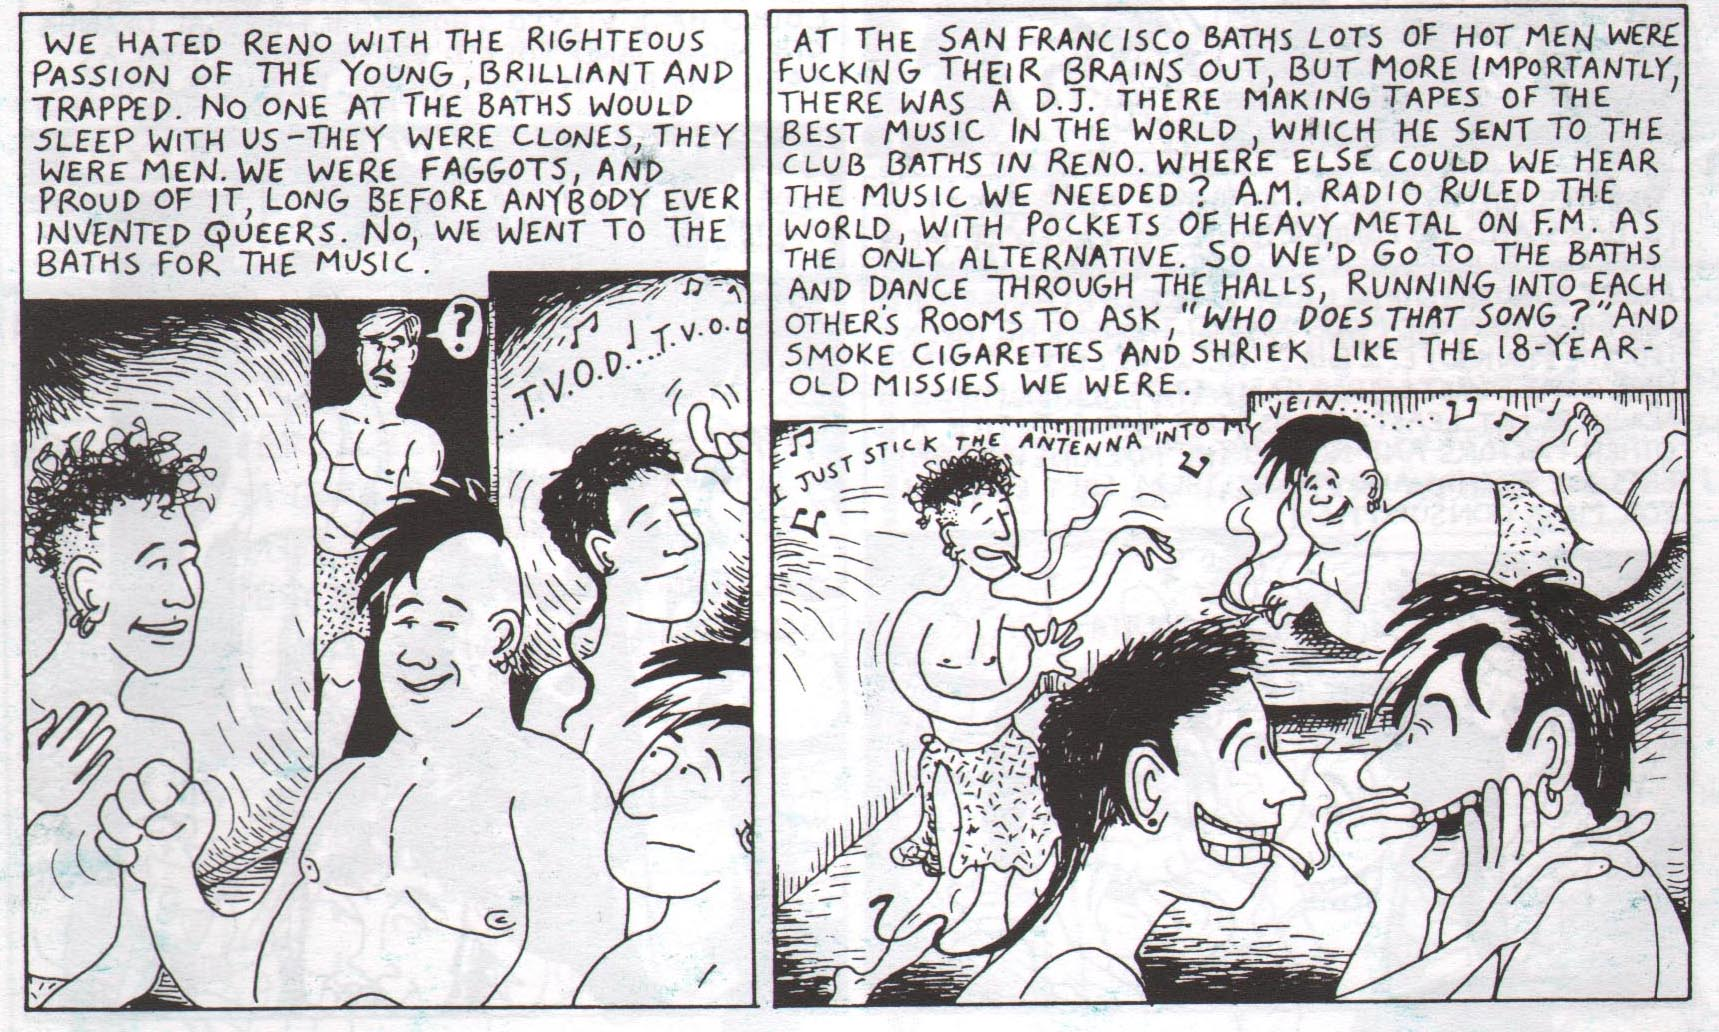 ... of the gay men who frequented the baths in his hometown in Reno, Nevada: ...